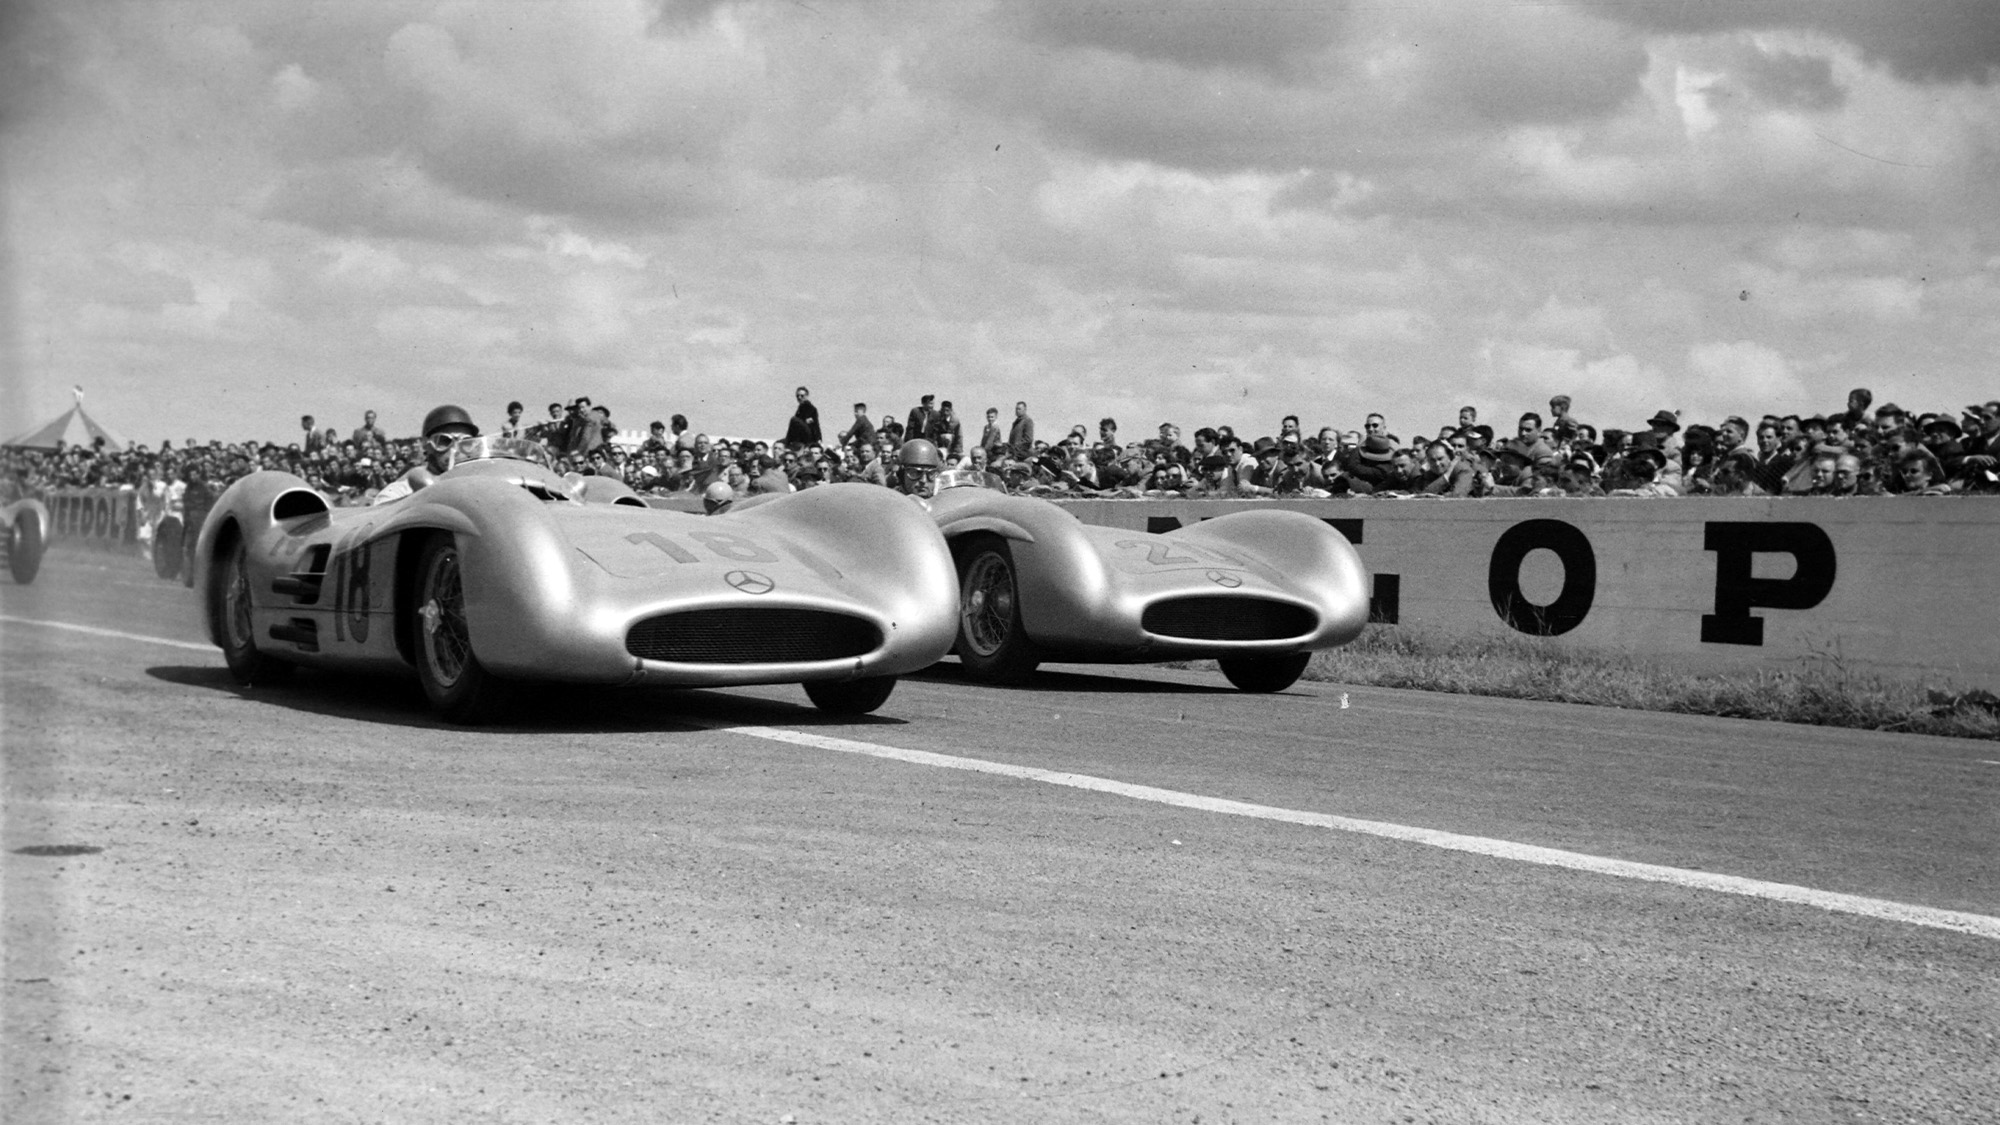 Juan Manuel Fangio, Mercedes W196, alongside Karl Kling, Mercedes W196 during the French GP at Reims-Gueux on July 04, 1954 in Reims-Gueux, France